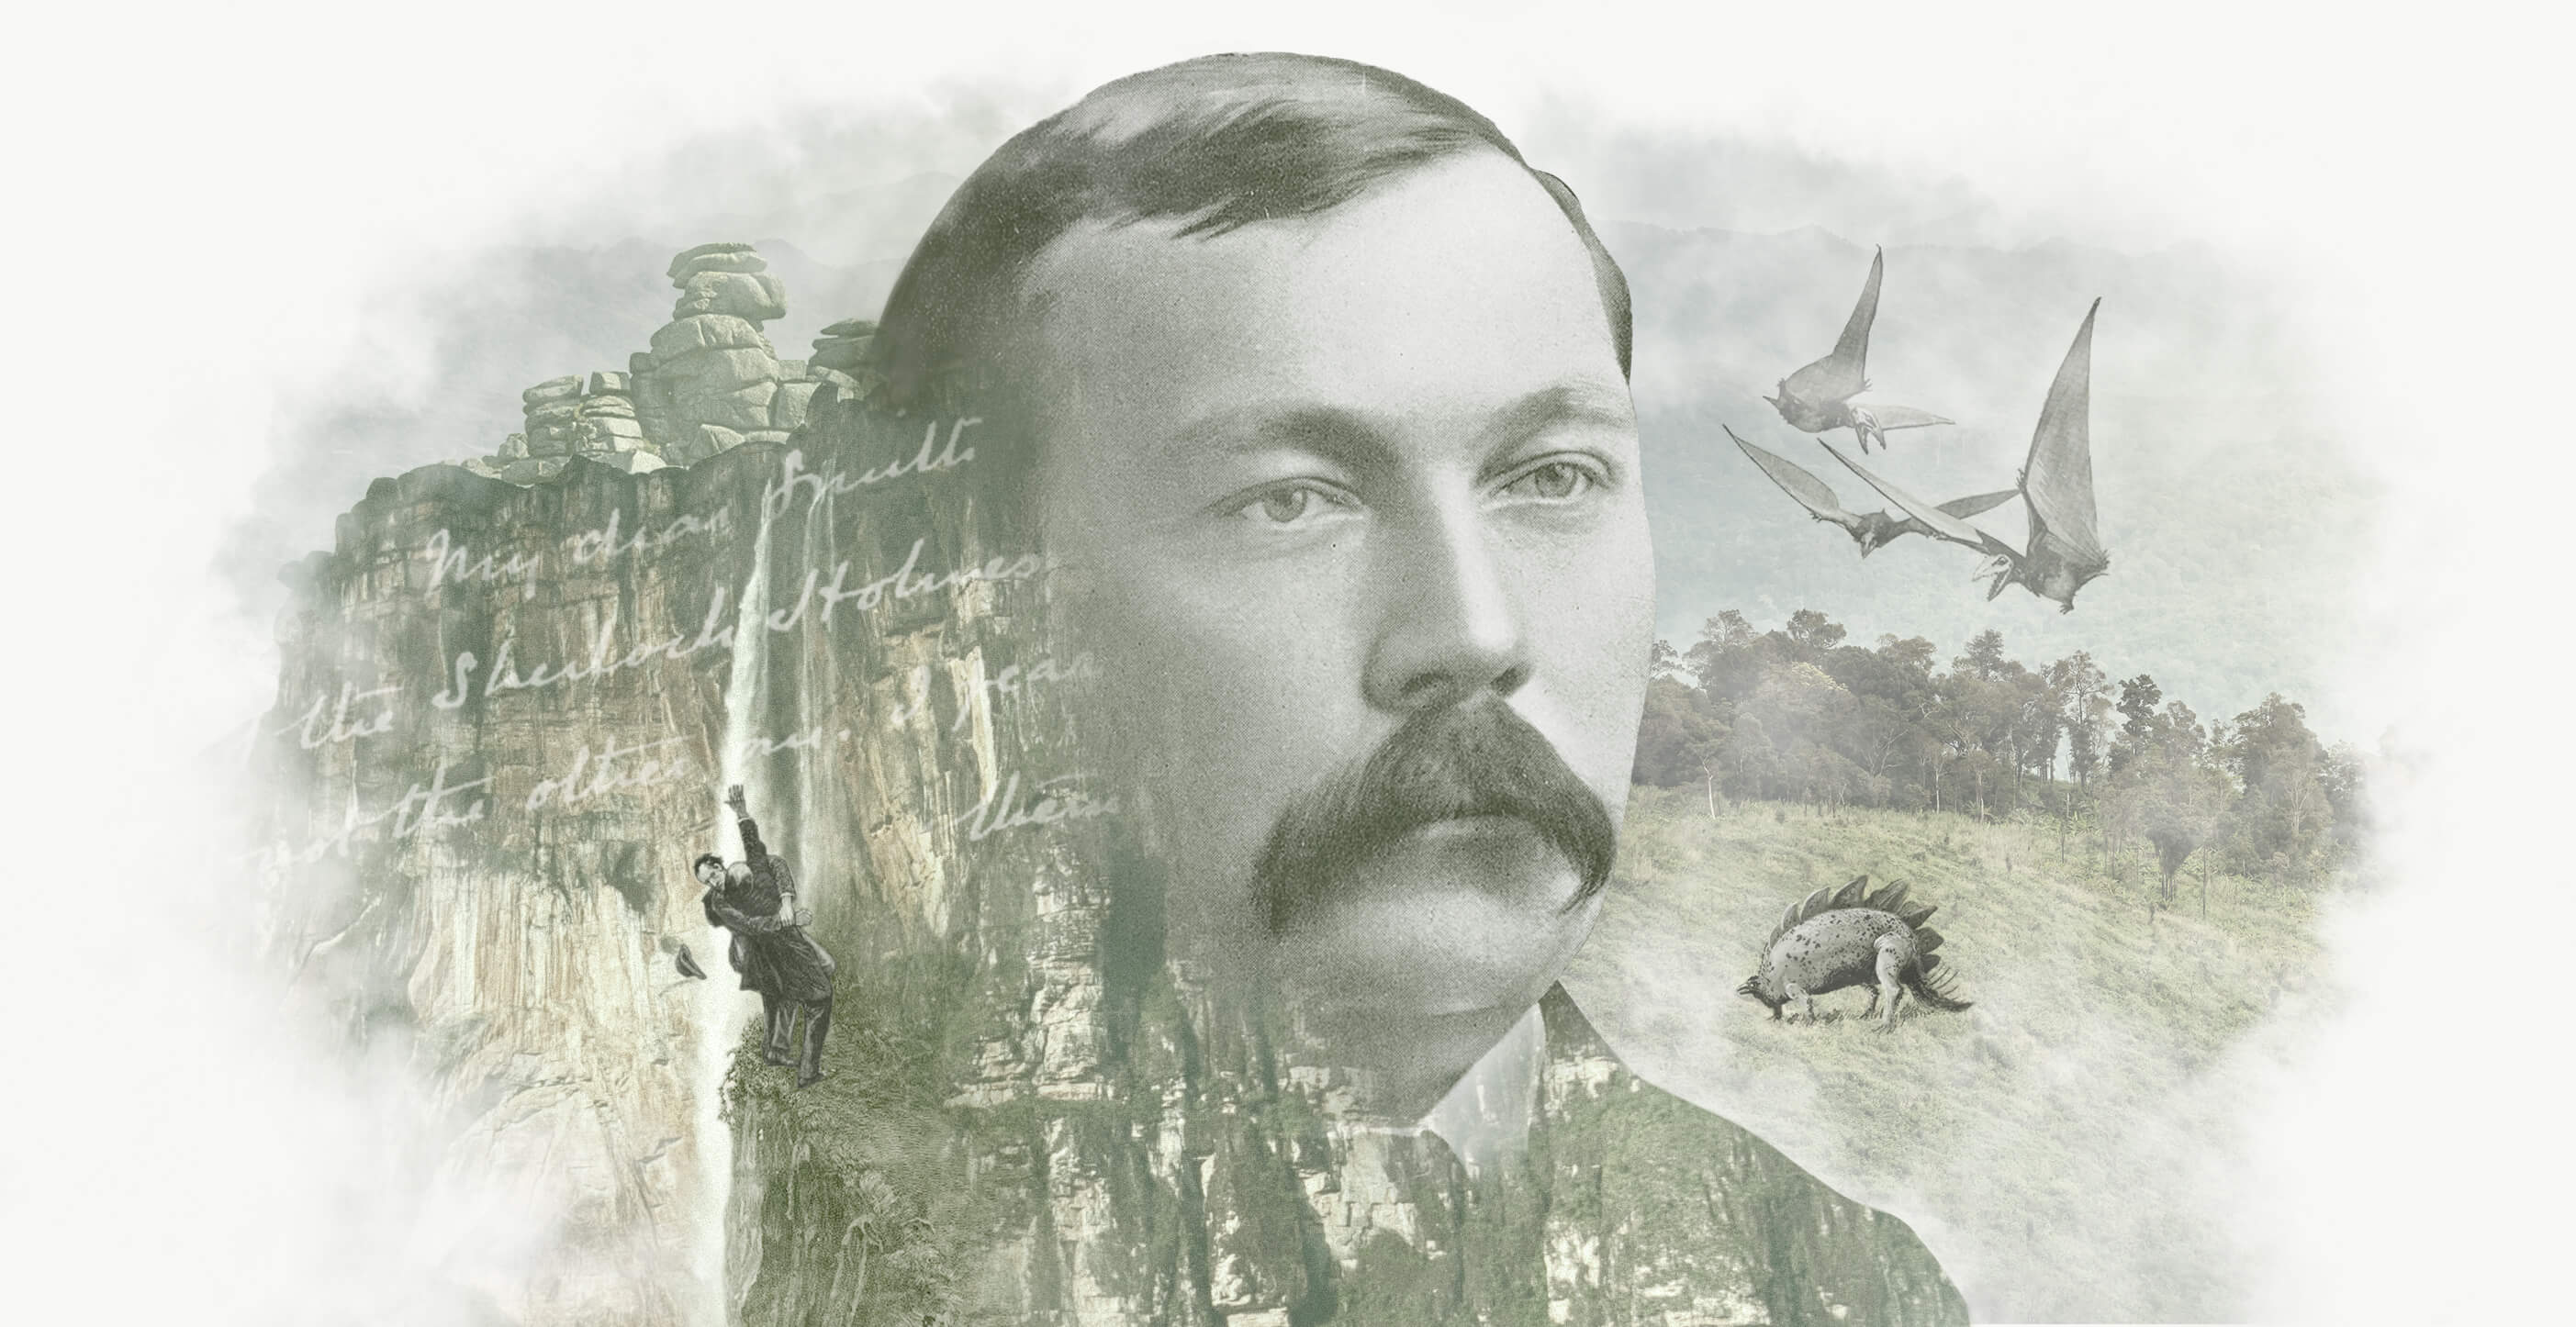 Arthur Conan Doyle The Author Montage